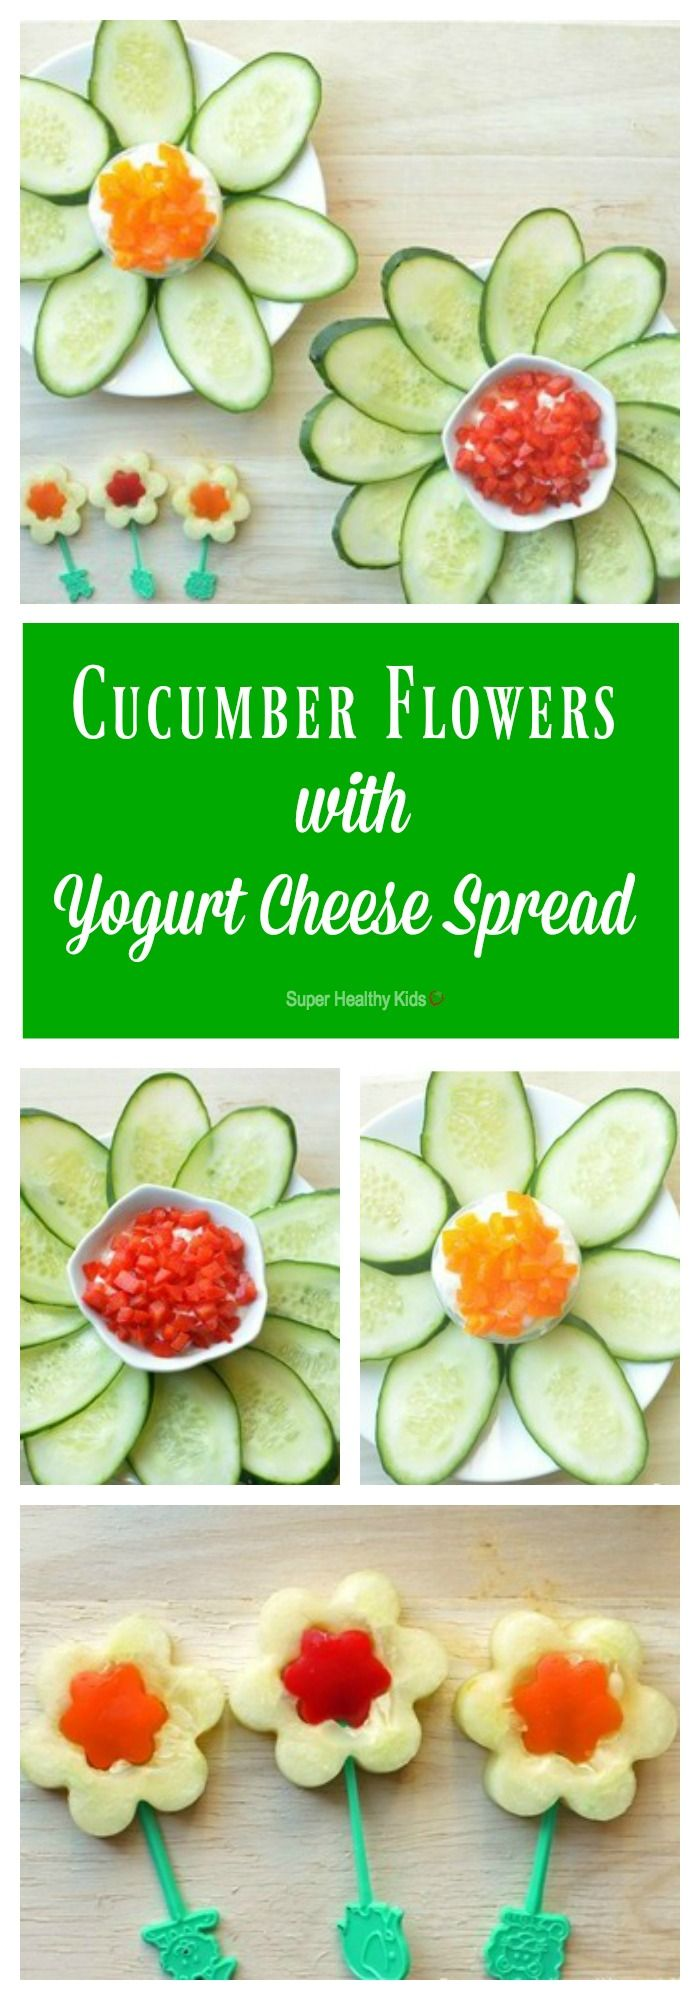 Vegetable carving step by step procedure - Cucumber Flowers With Pepper Yogurt Cheese Spread Strained Yogurt Makes A High Protein Dip